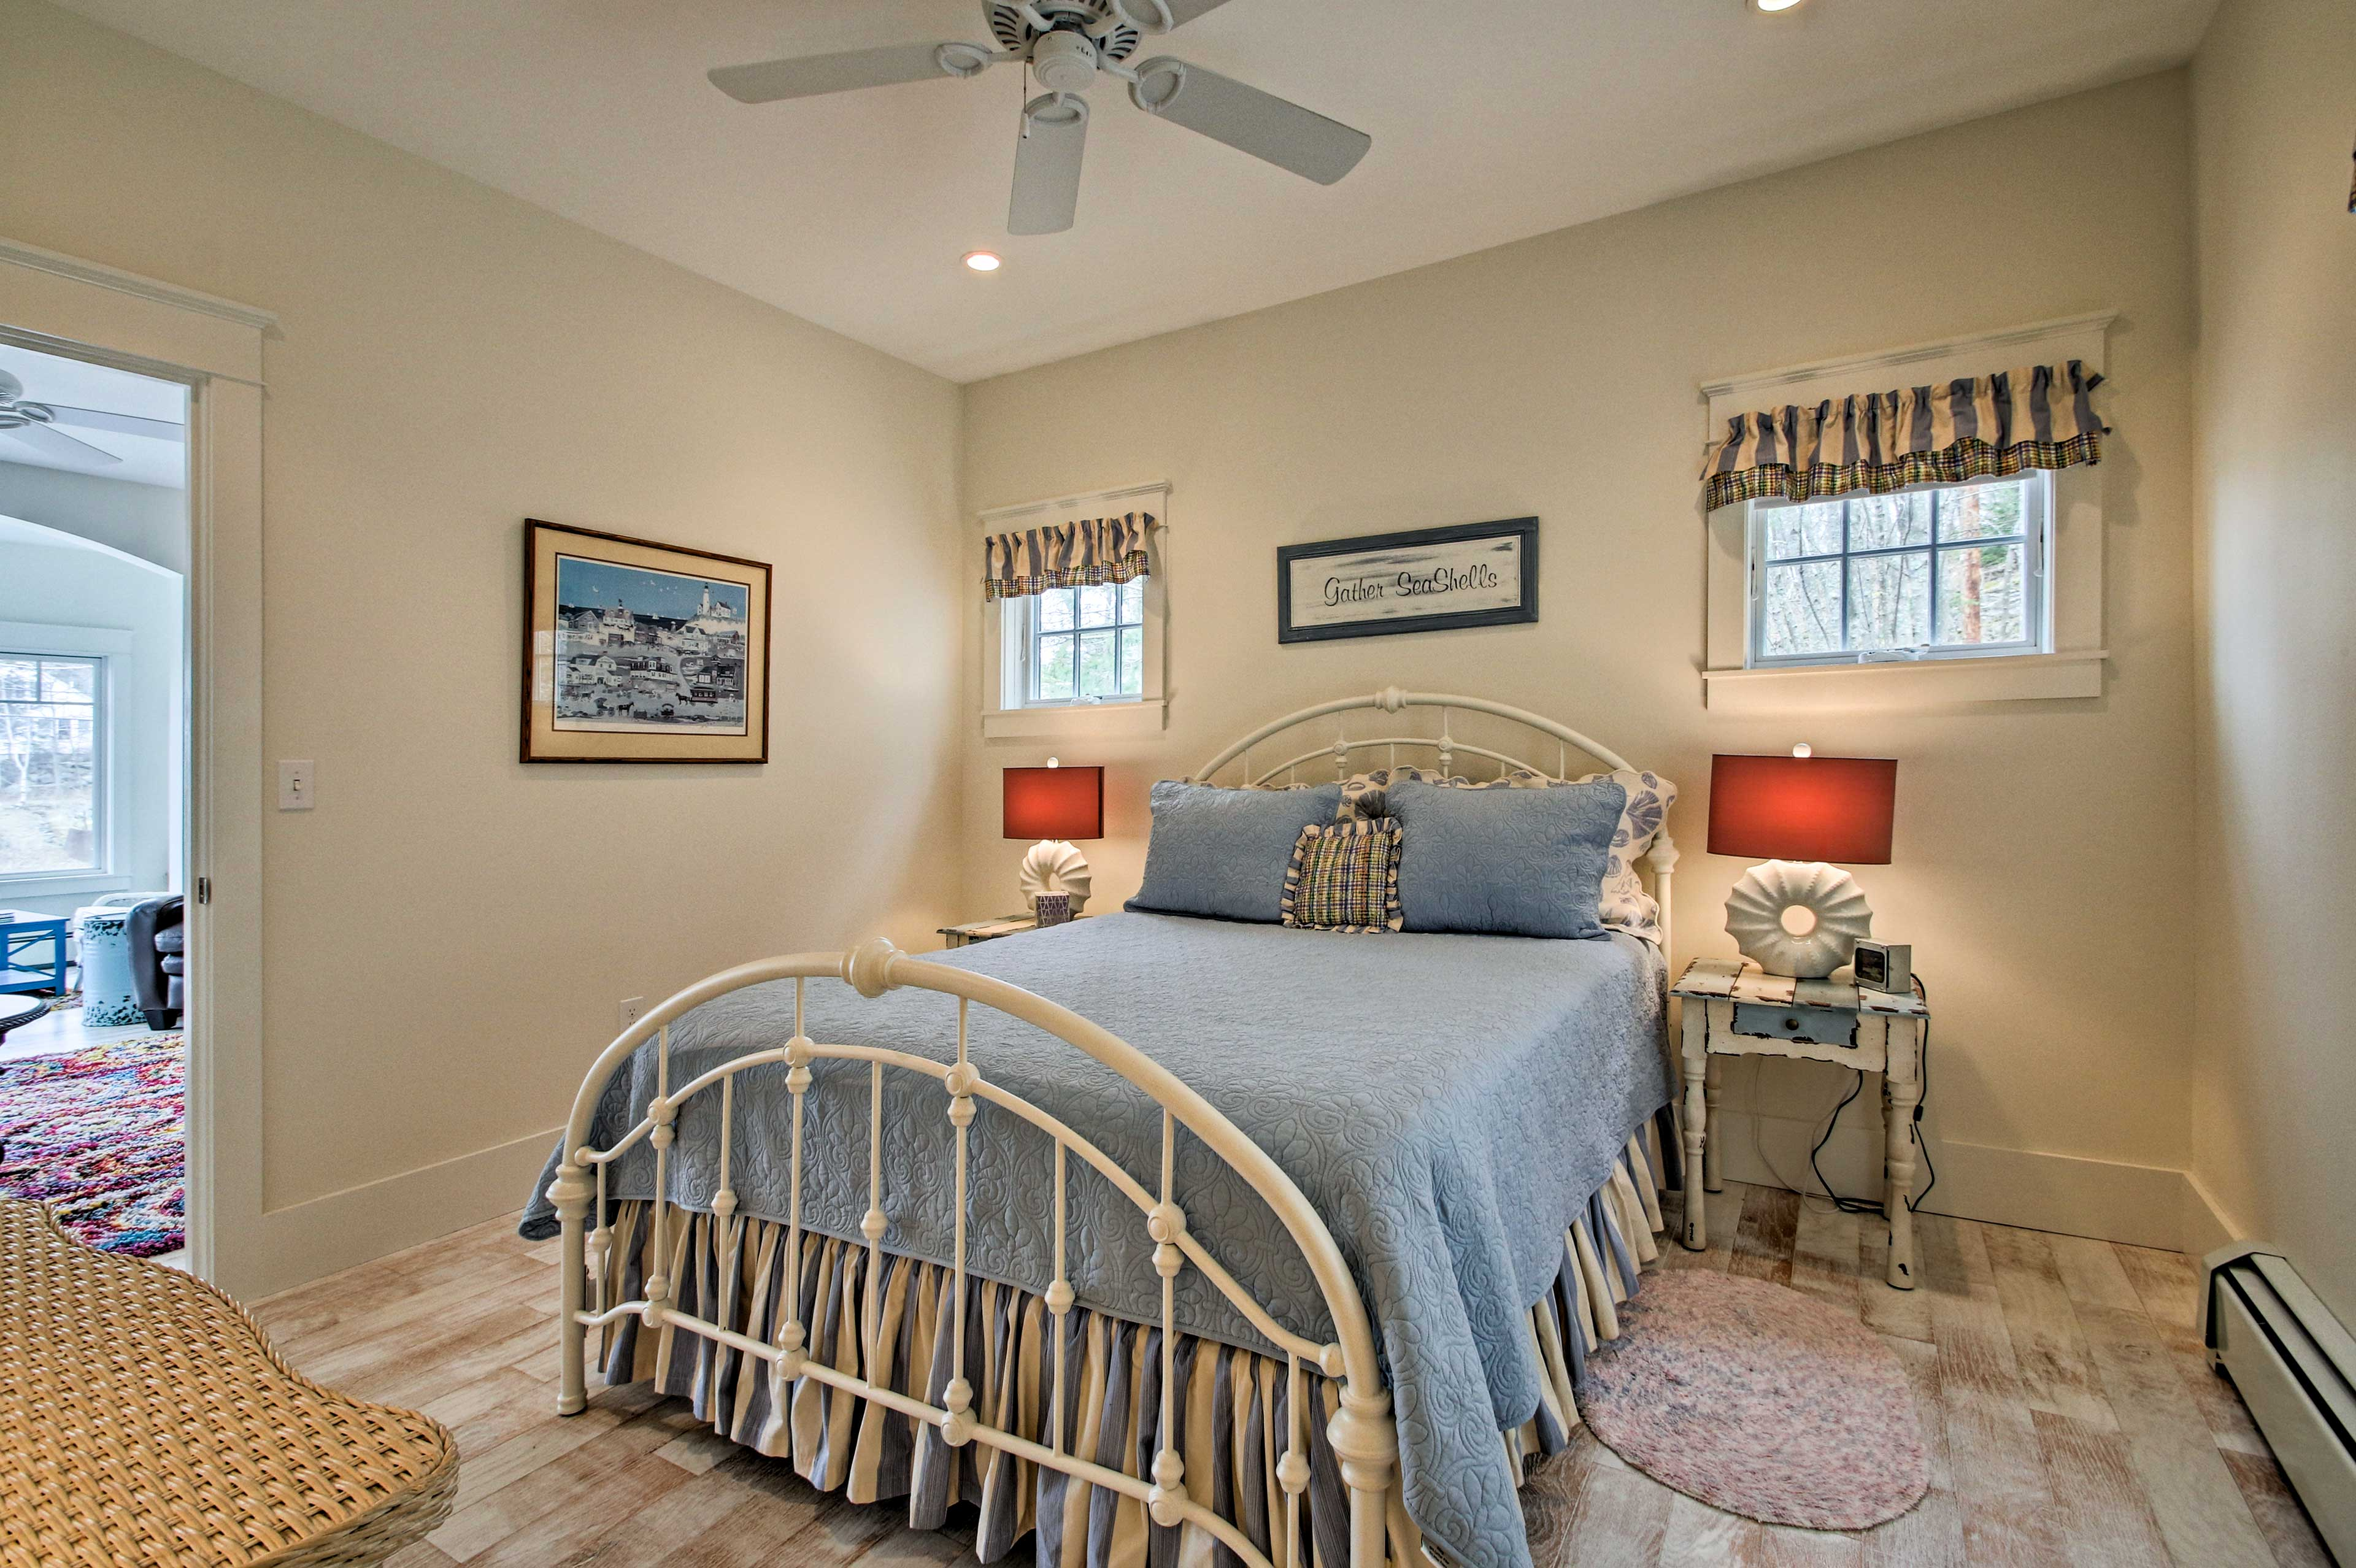 Turn the ceiling fan on for a gentle breeze while you sleep.